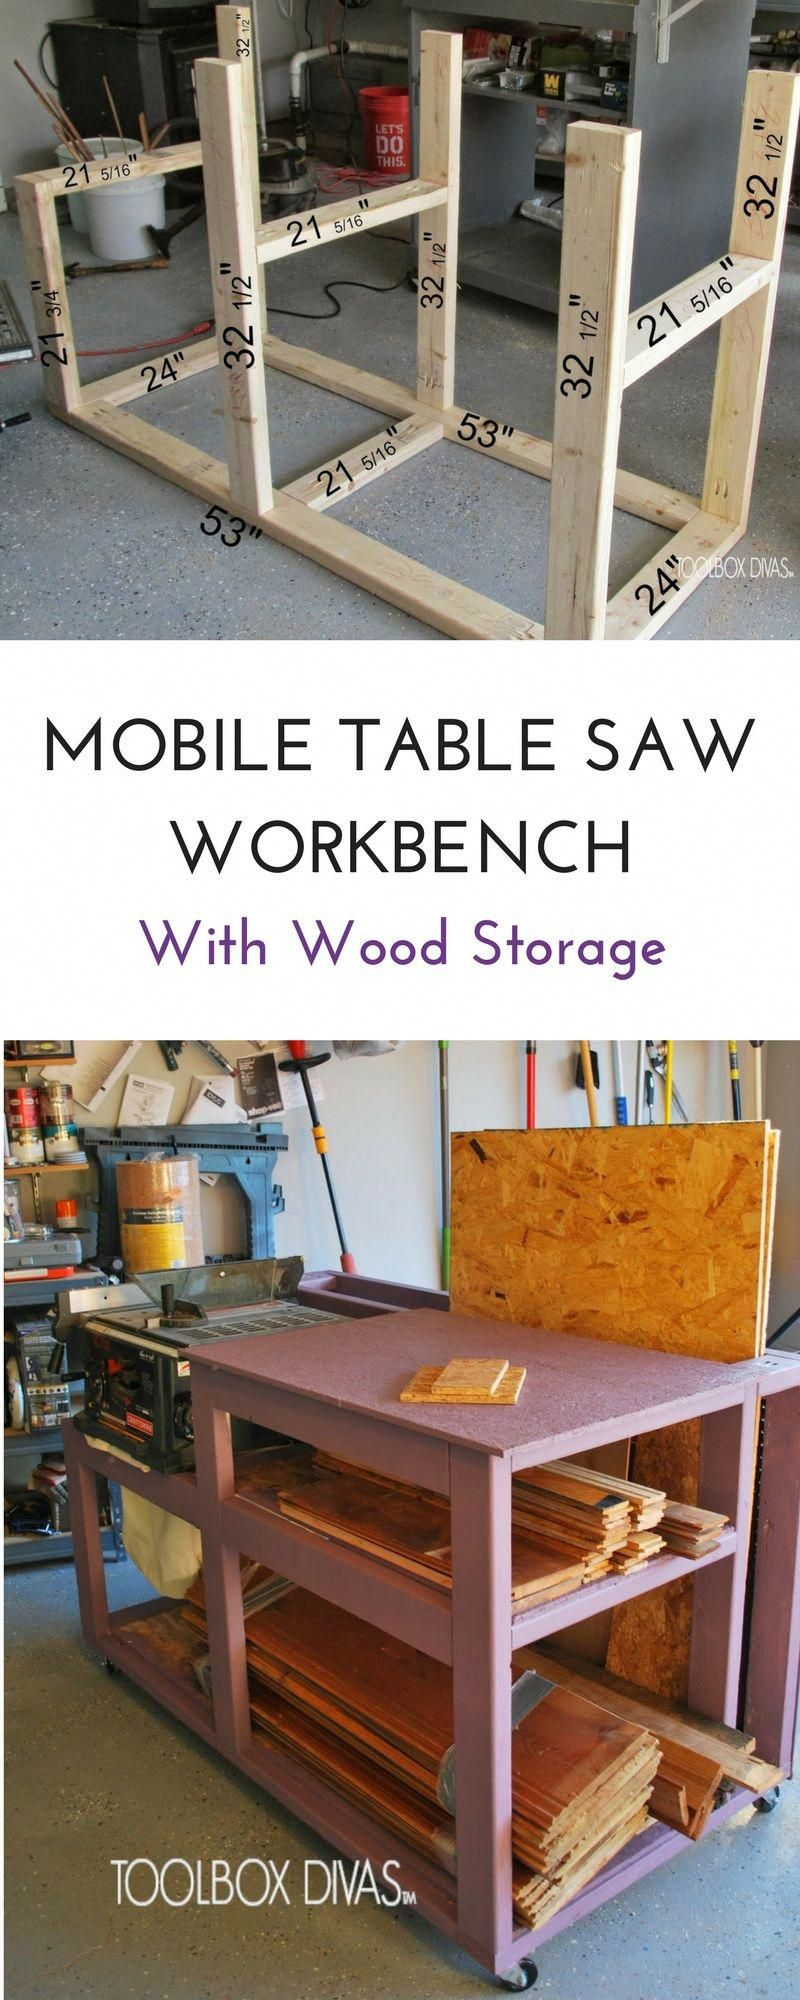 Plan D Etabli Bois table saw workbench with wood storage | scie diy, projets de